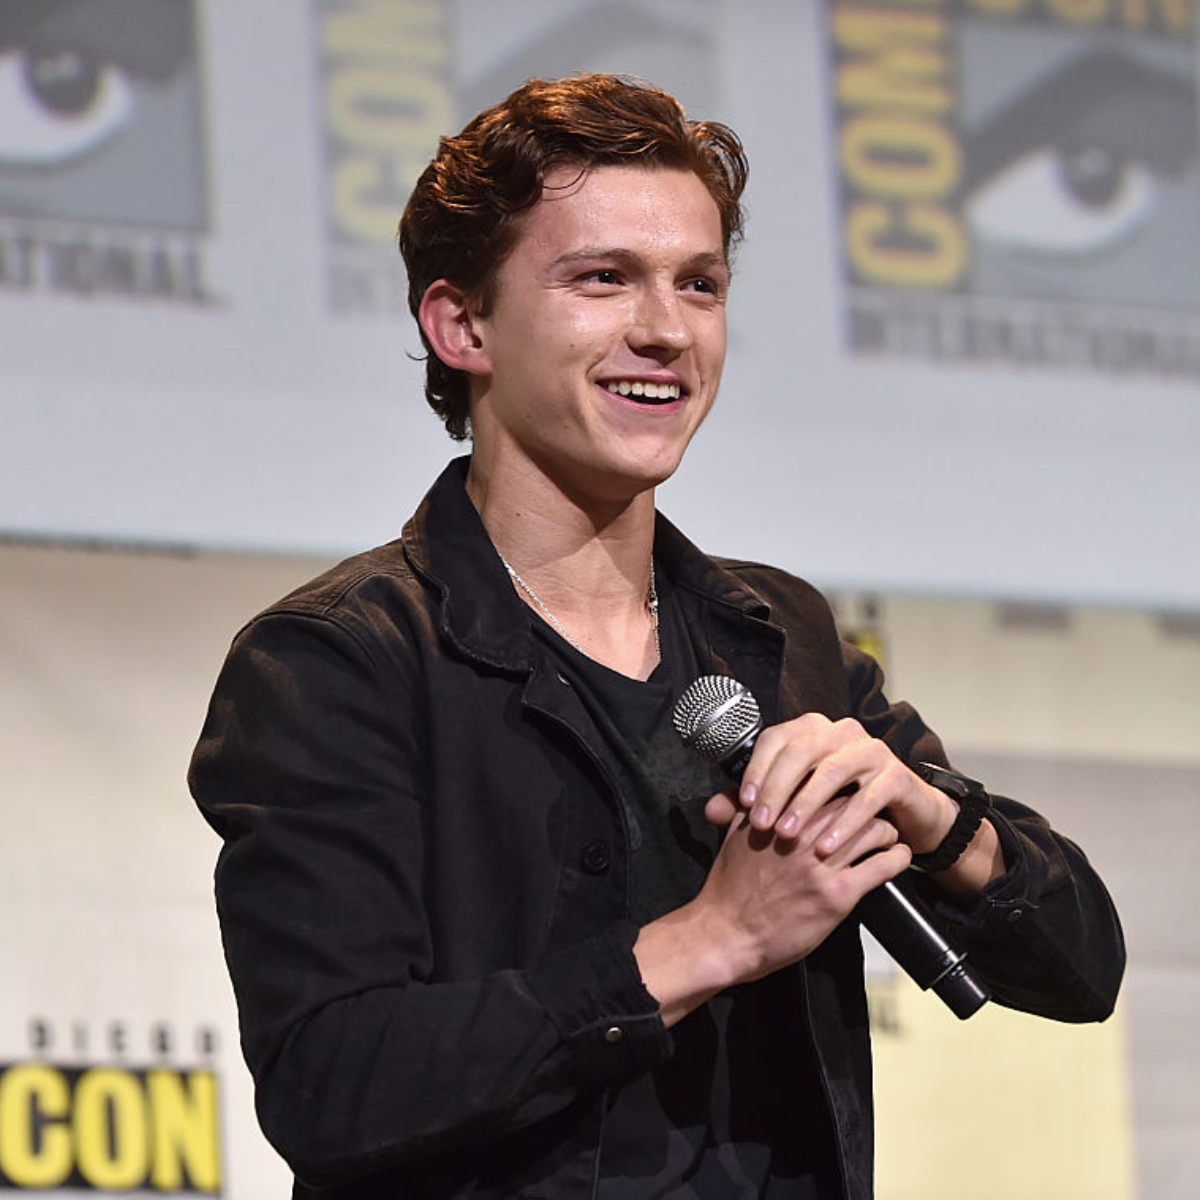 Spider Man star Tom Holland SHAVES his head for his upcoming film & fans think he looks like Eminem